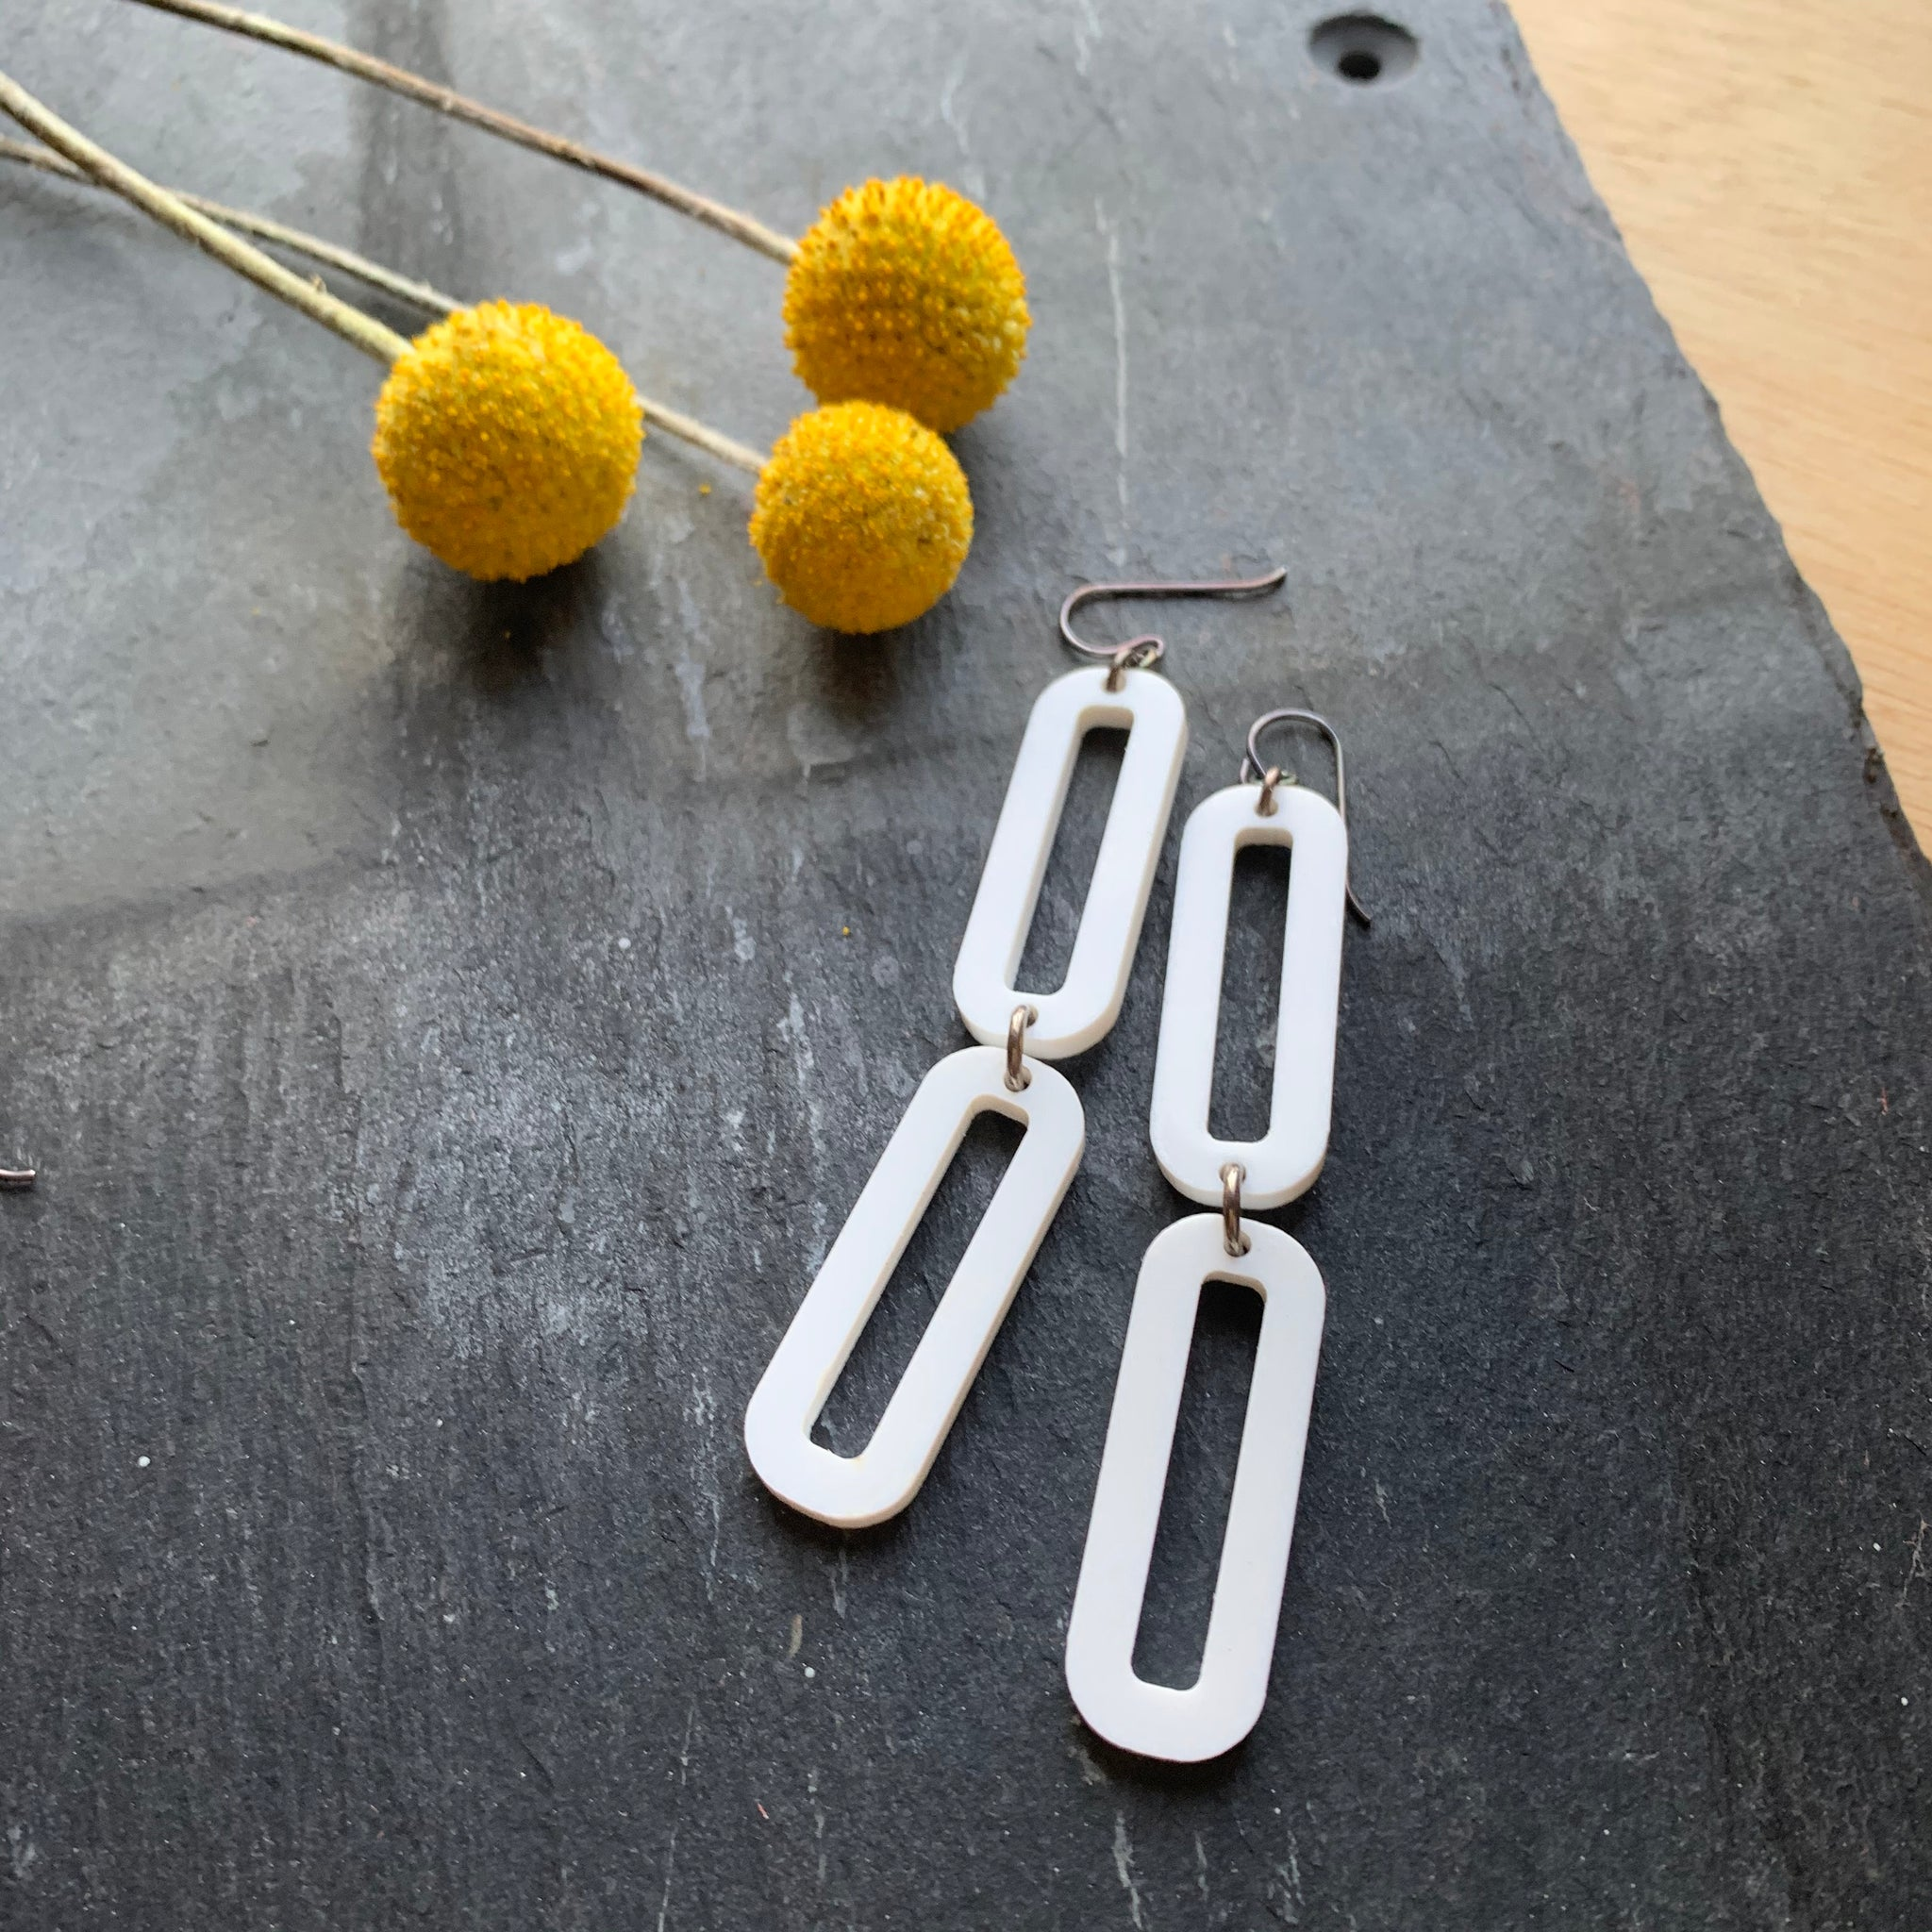 LINK 2 Earrings by Silvercocoon - Upstate MN